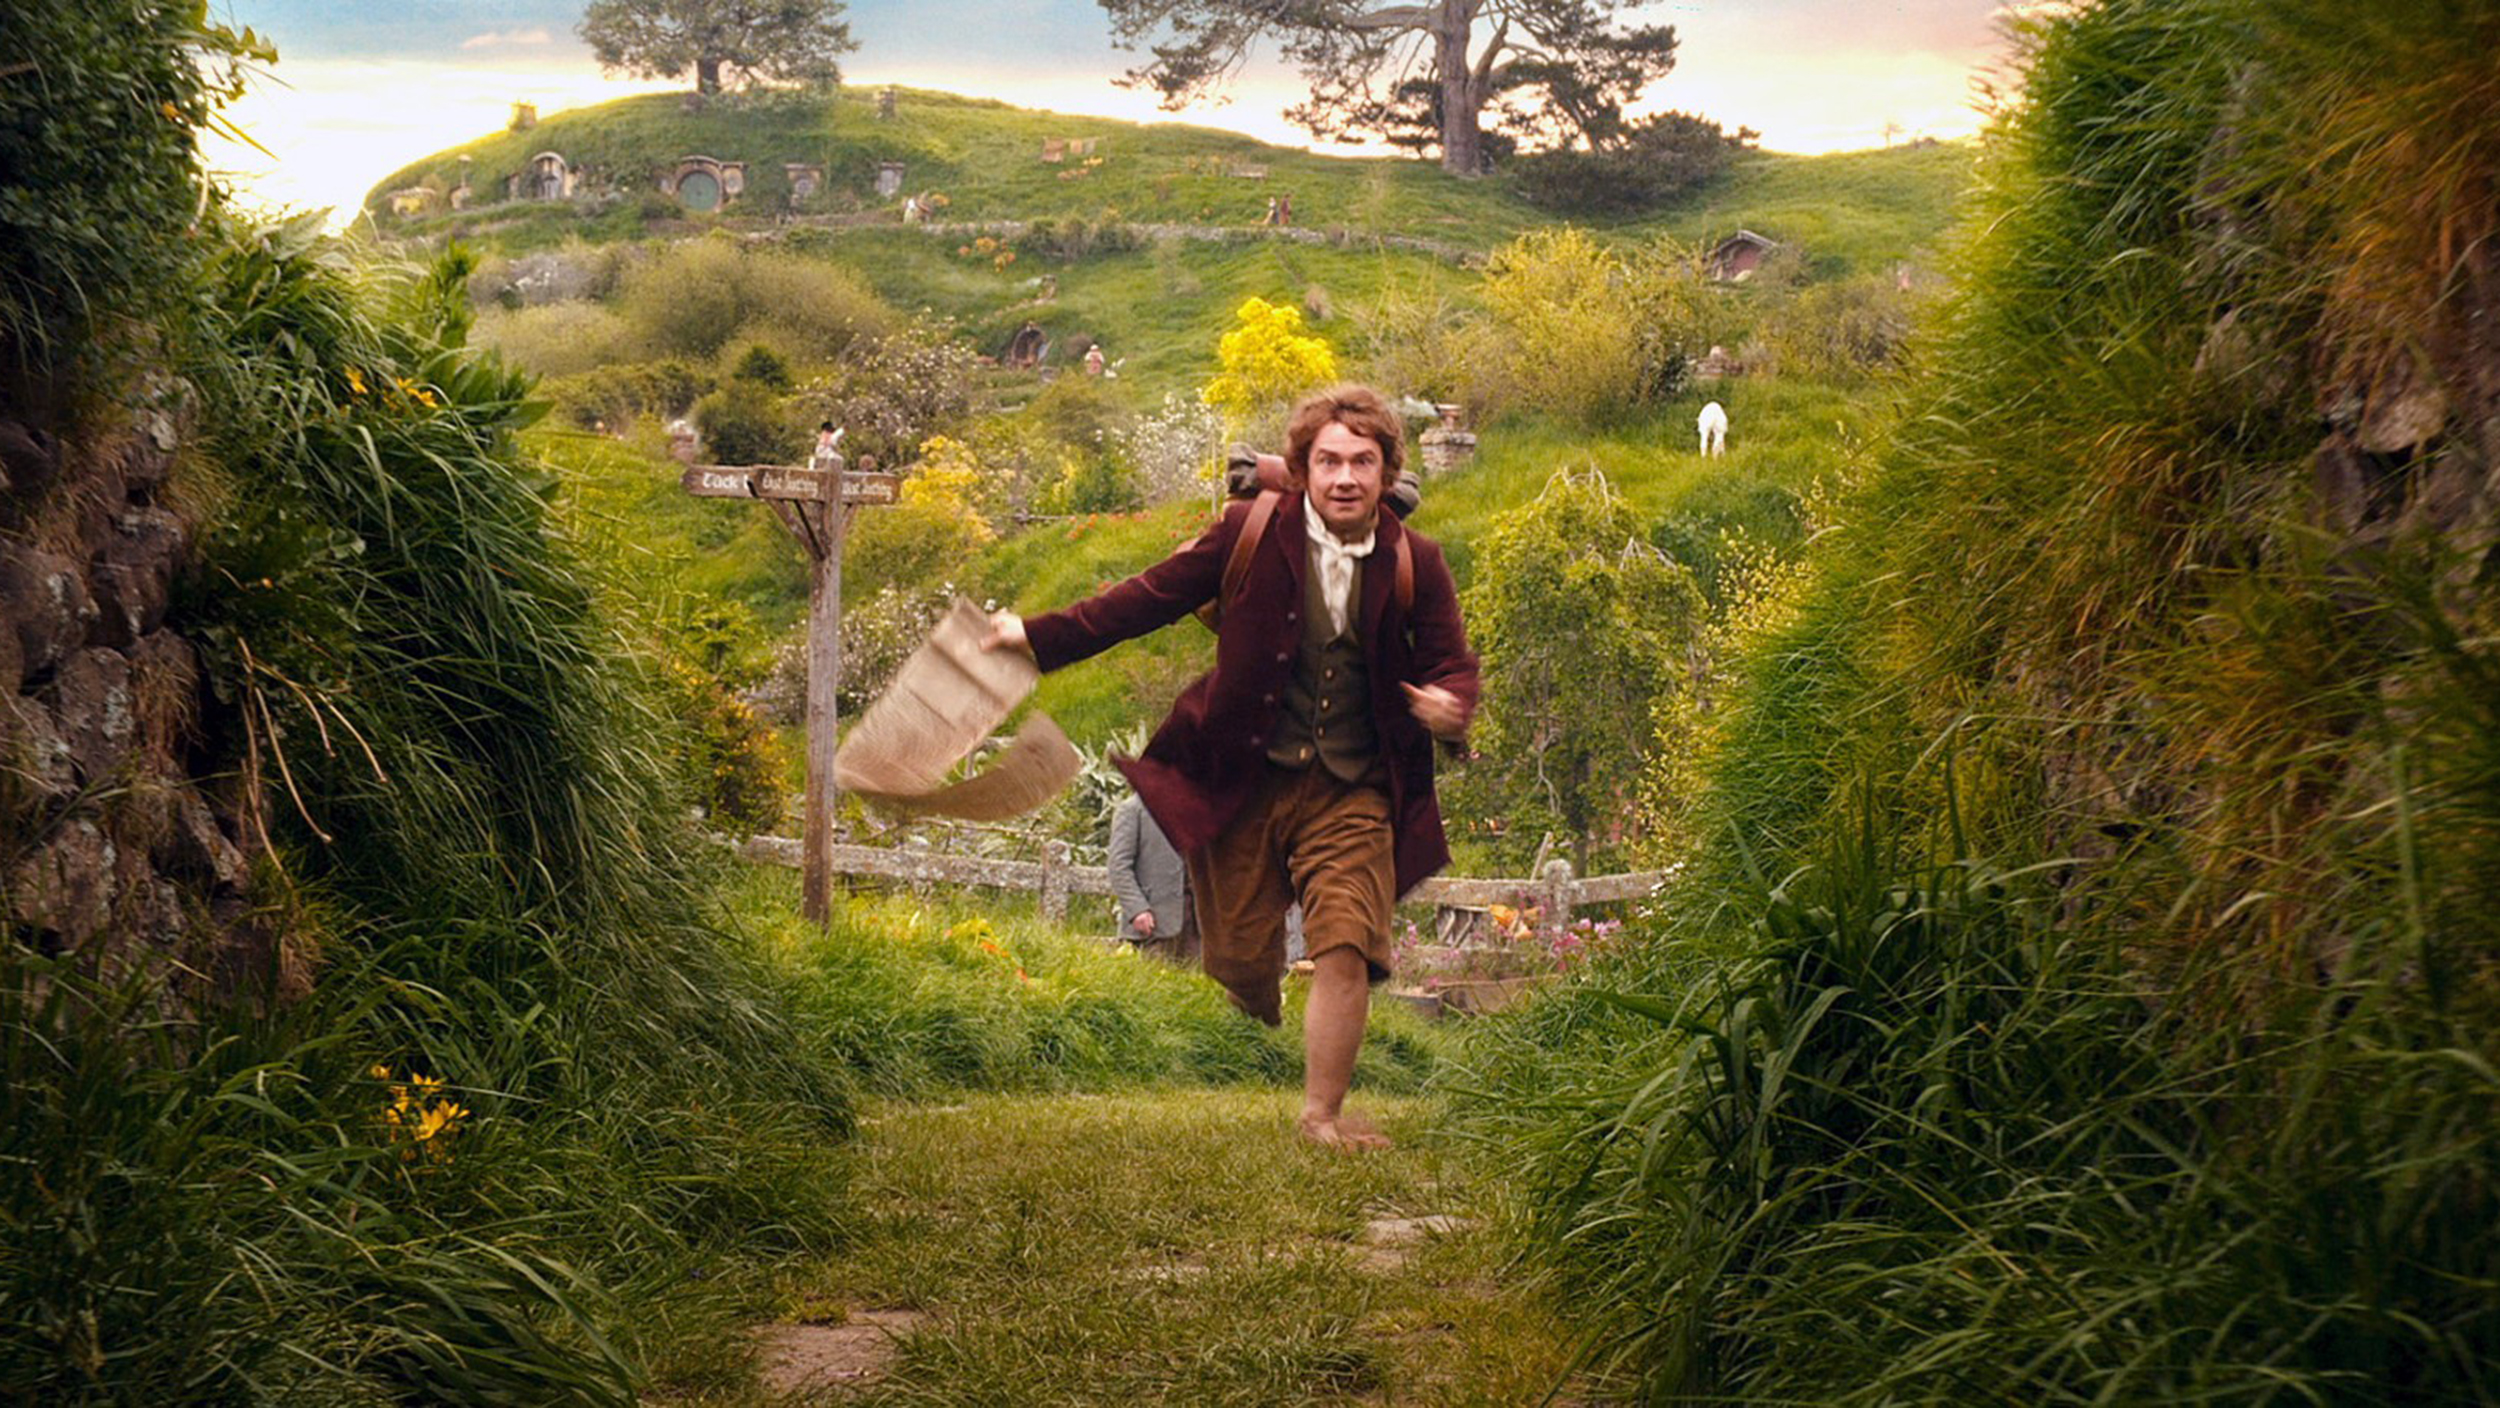 5 places where you can vacation like a hobbit on Hobbit Day - TODAY.com